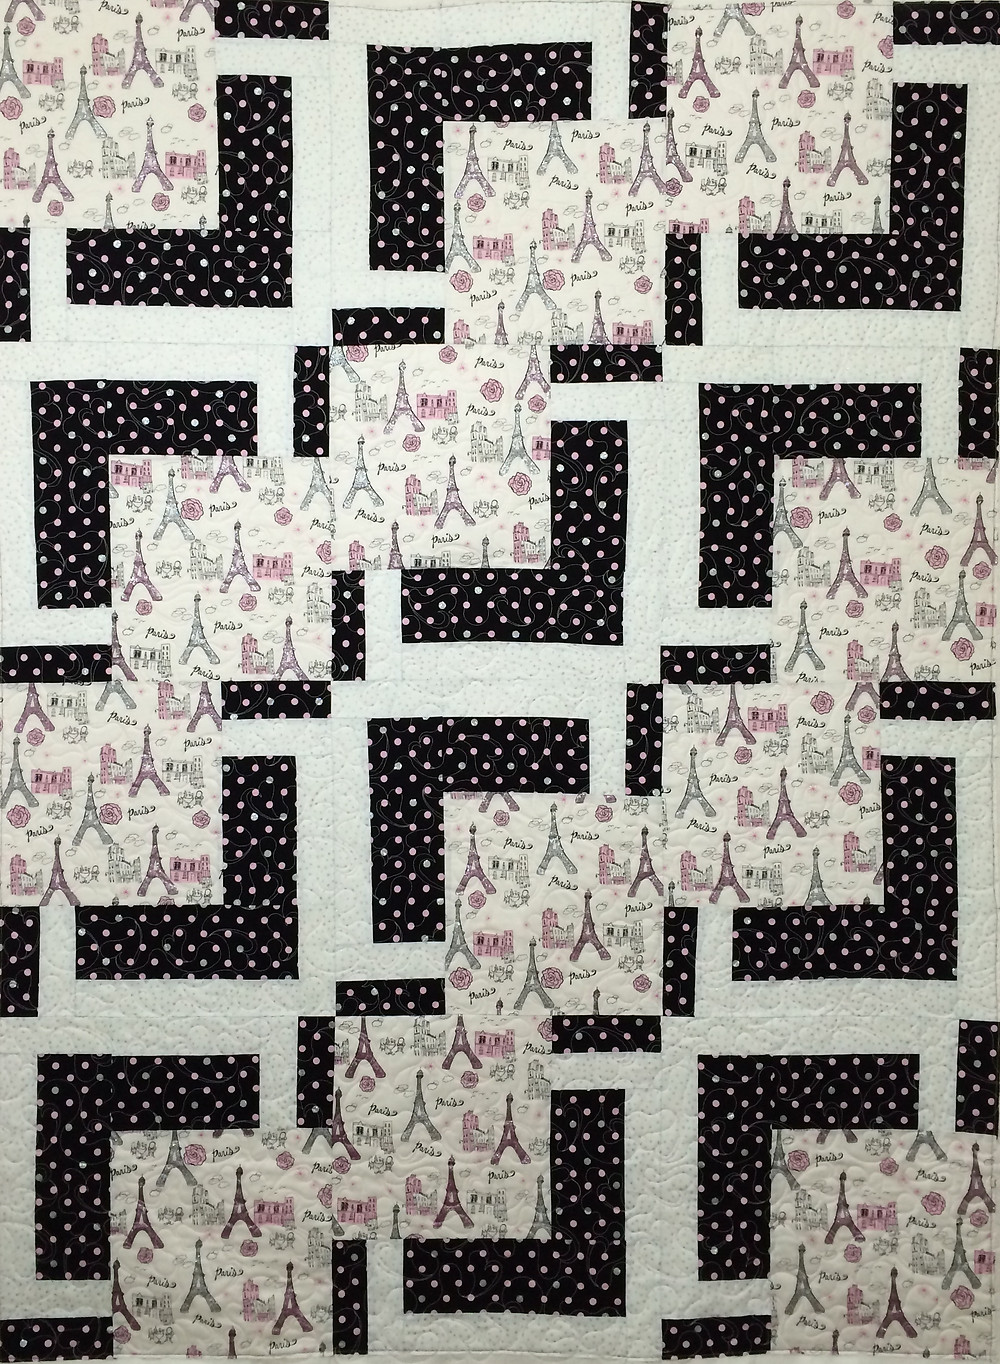 little girl Paris quilt with black and white polka dot fabric